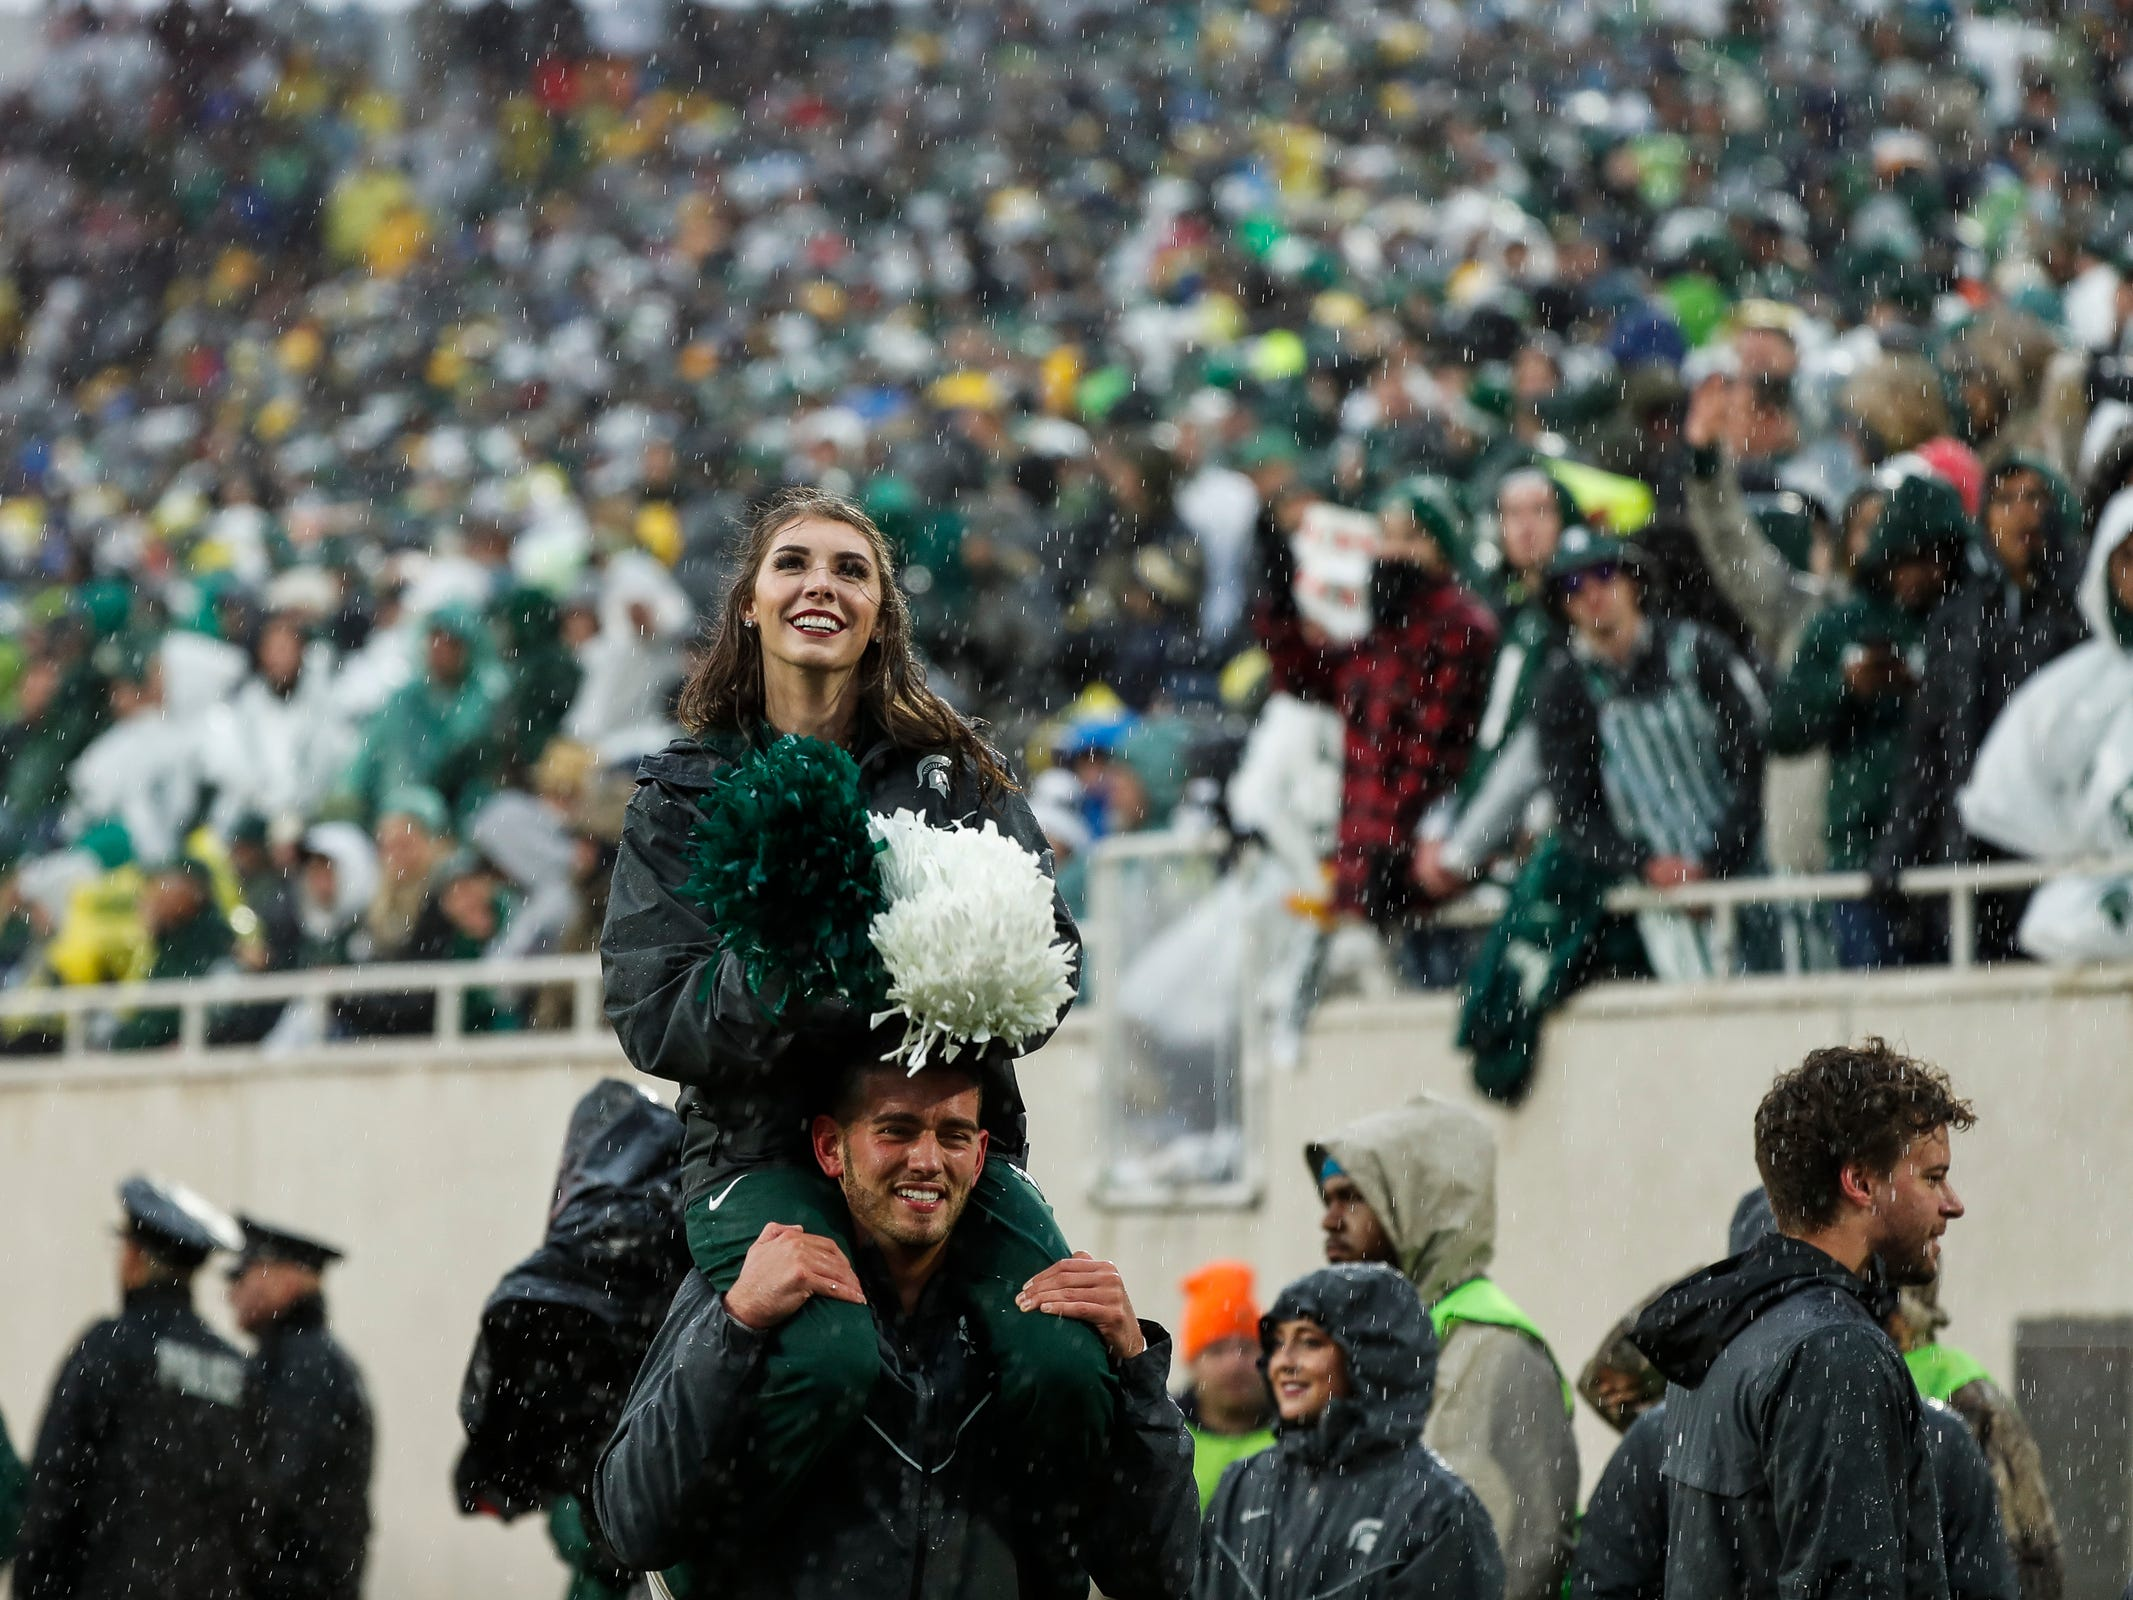 Michigan State cheerleaders enjoy the rain during the second half against Michigan at Spartan Stadium in East Lansing, Saturday, Oct. 20, 2018.